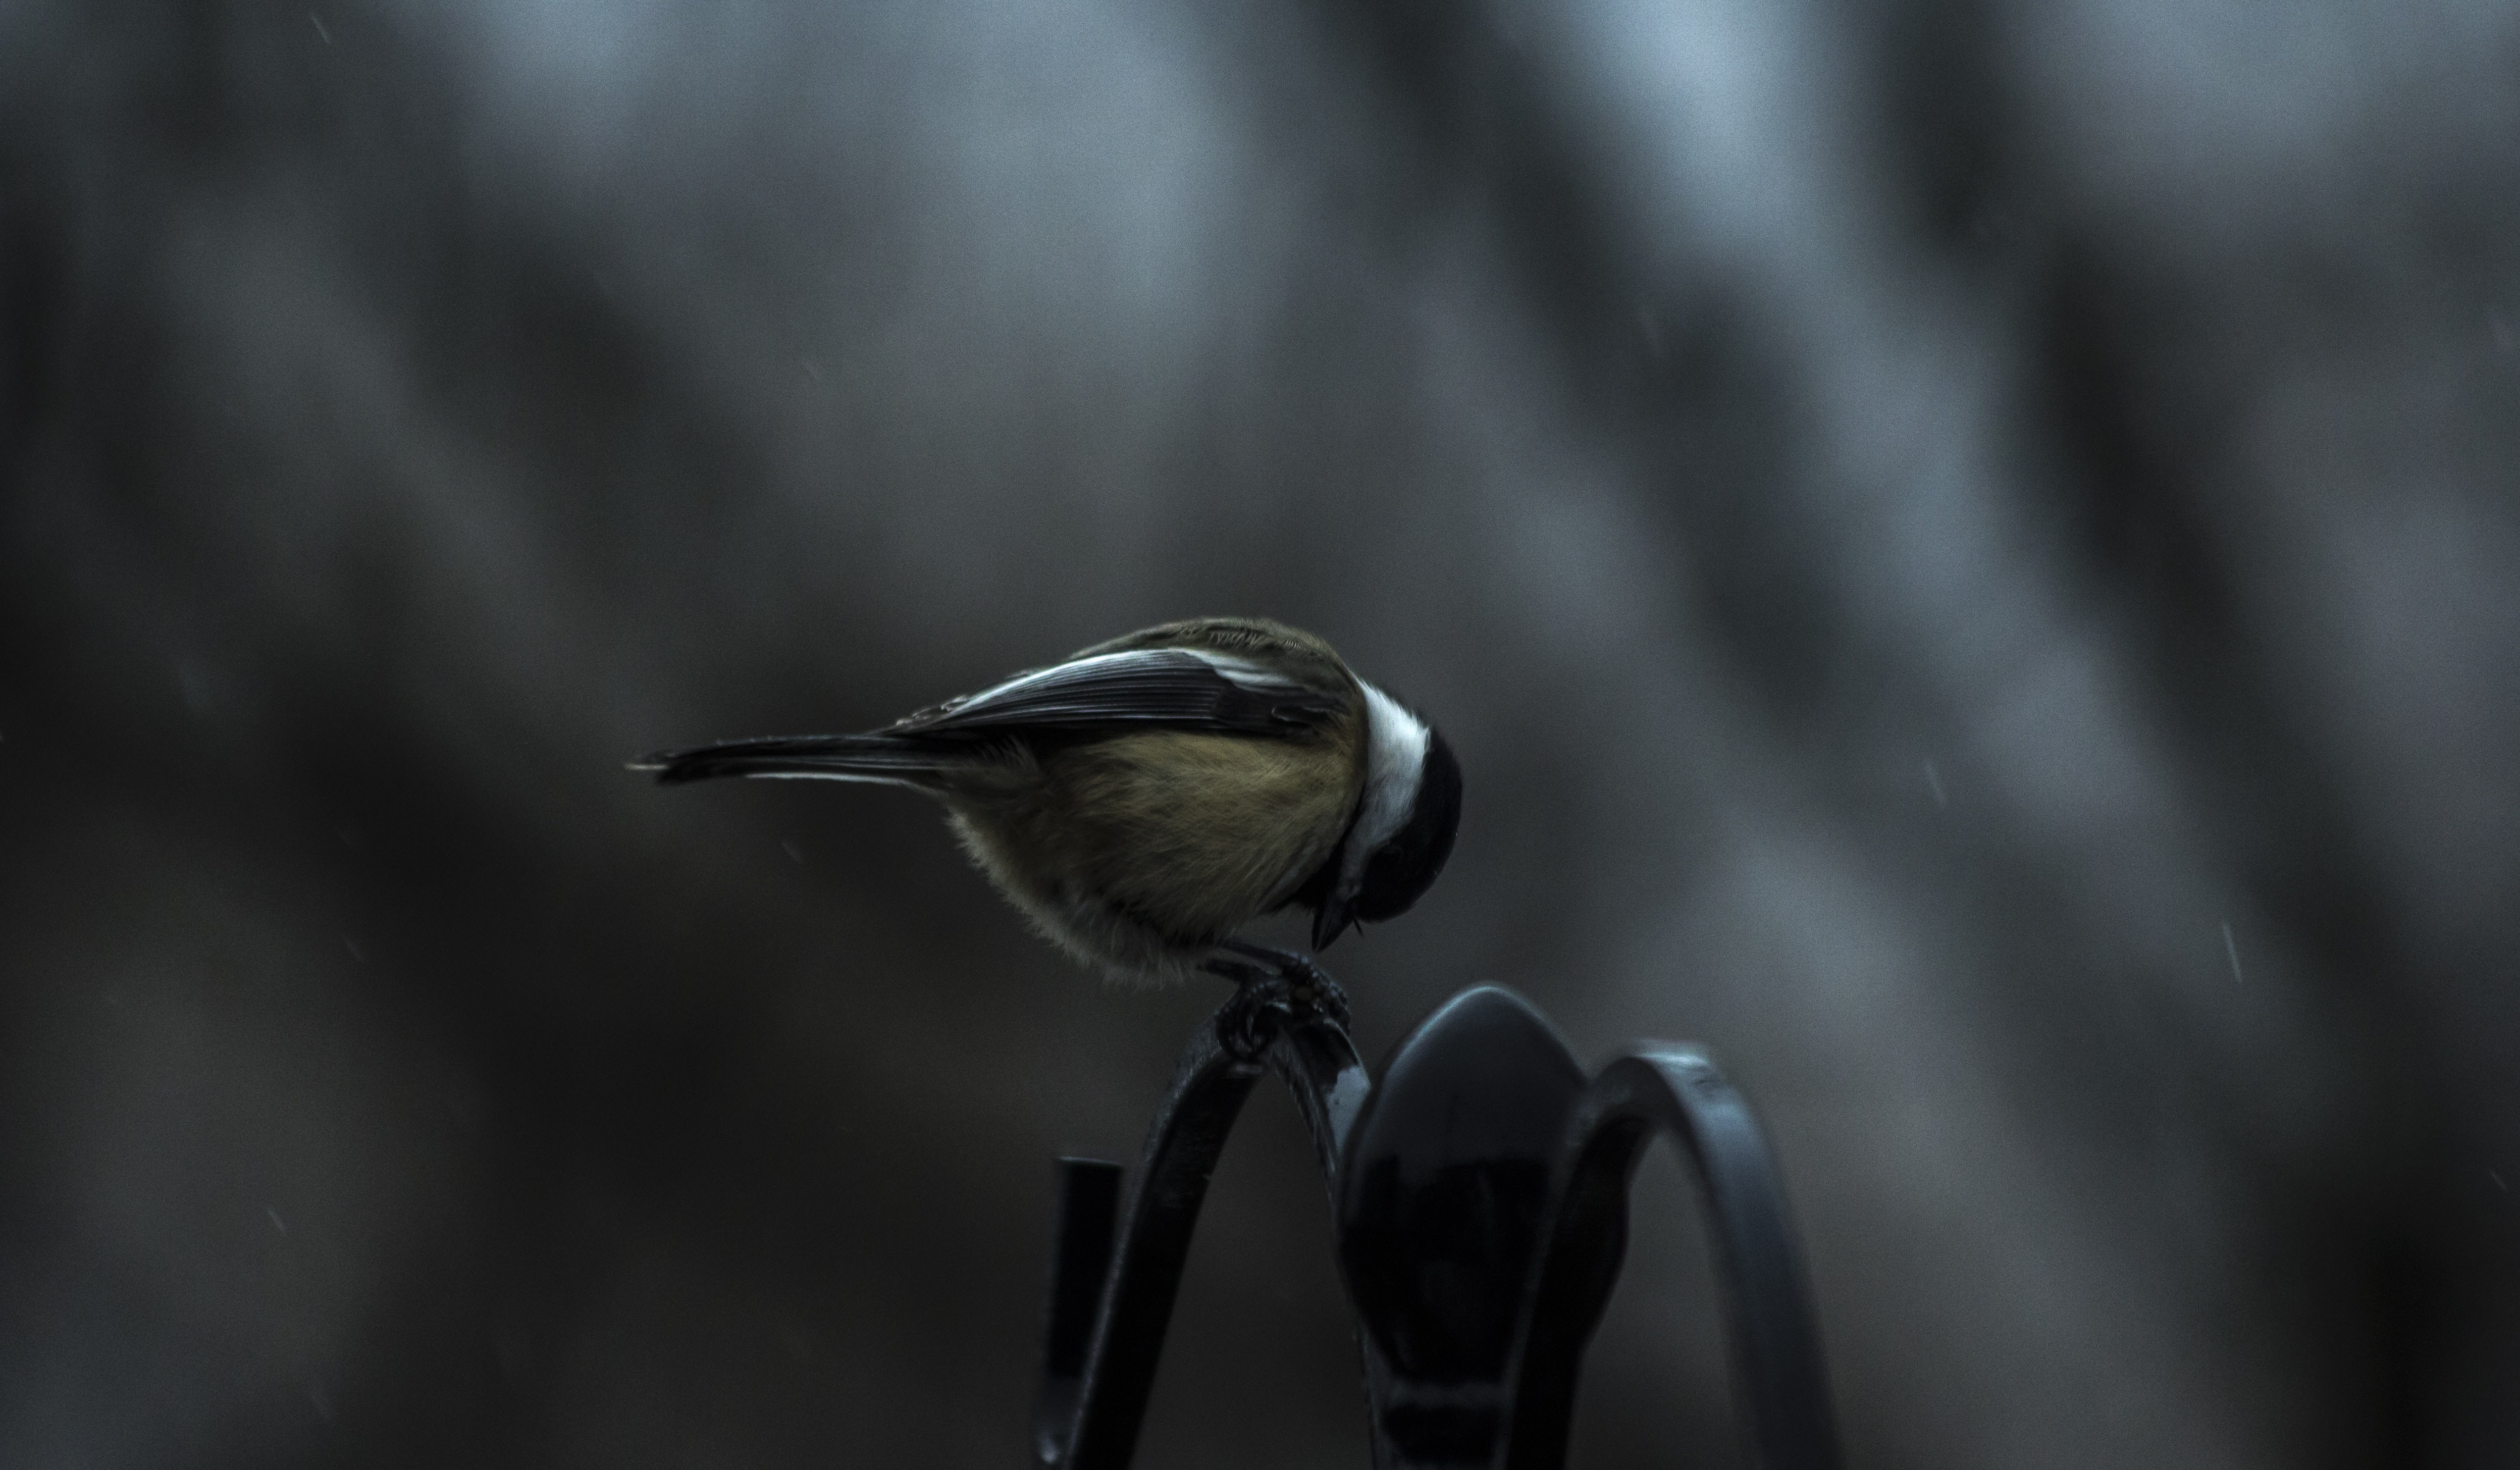 Small blue tit bird perched alone outside